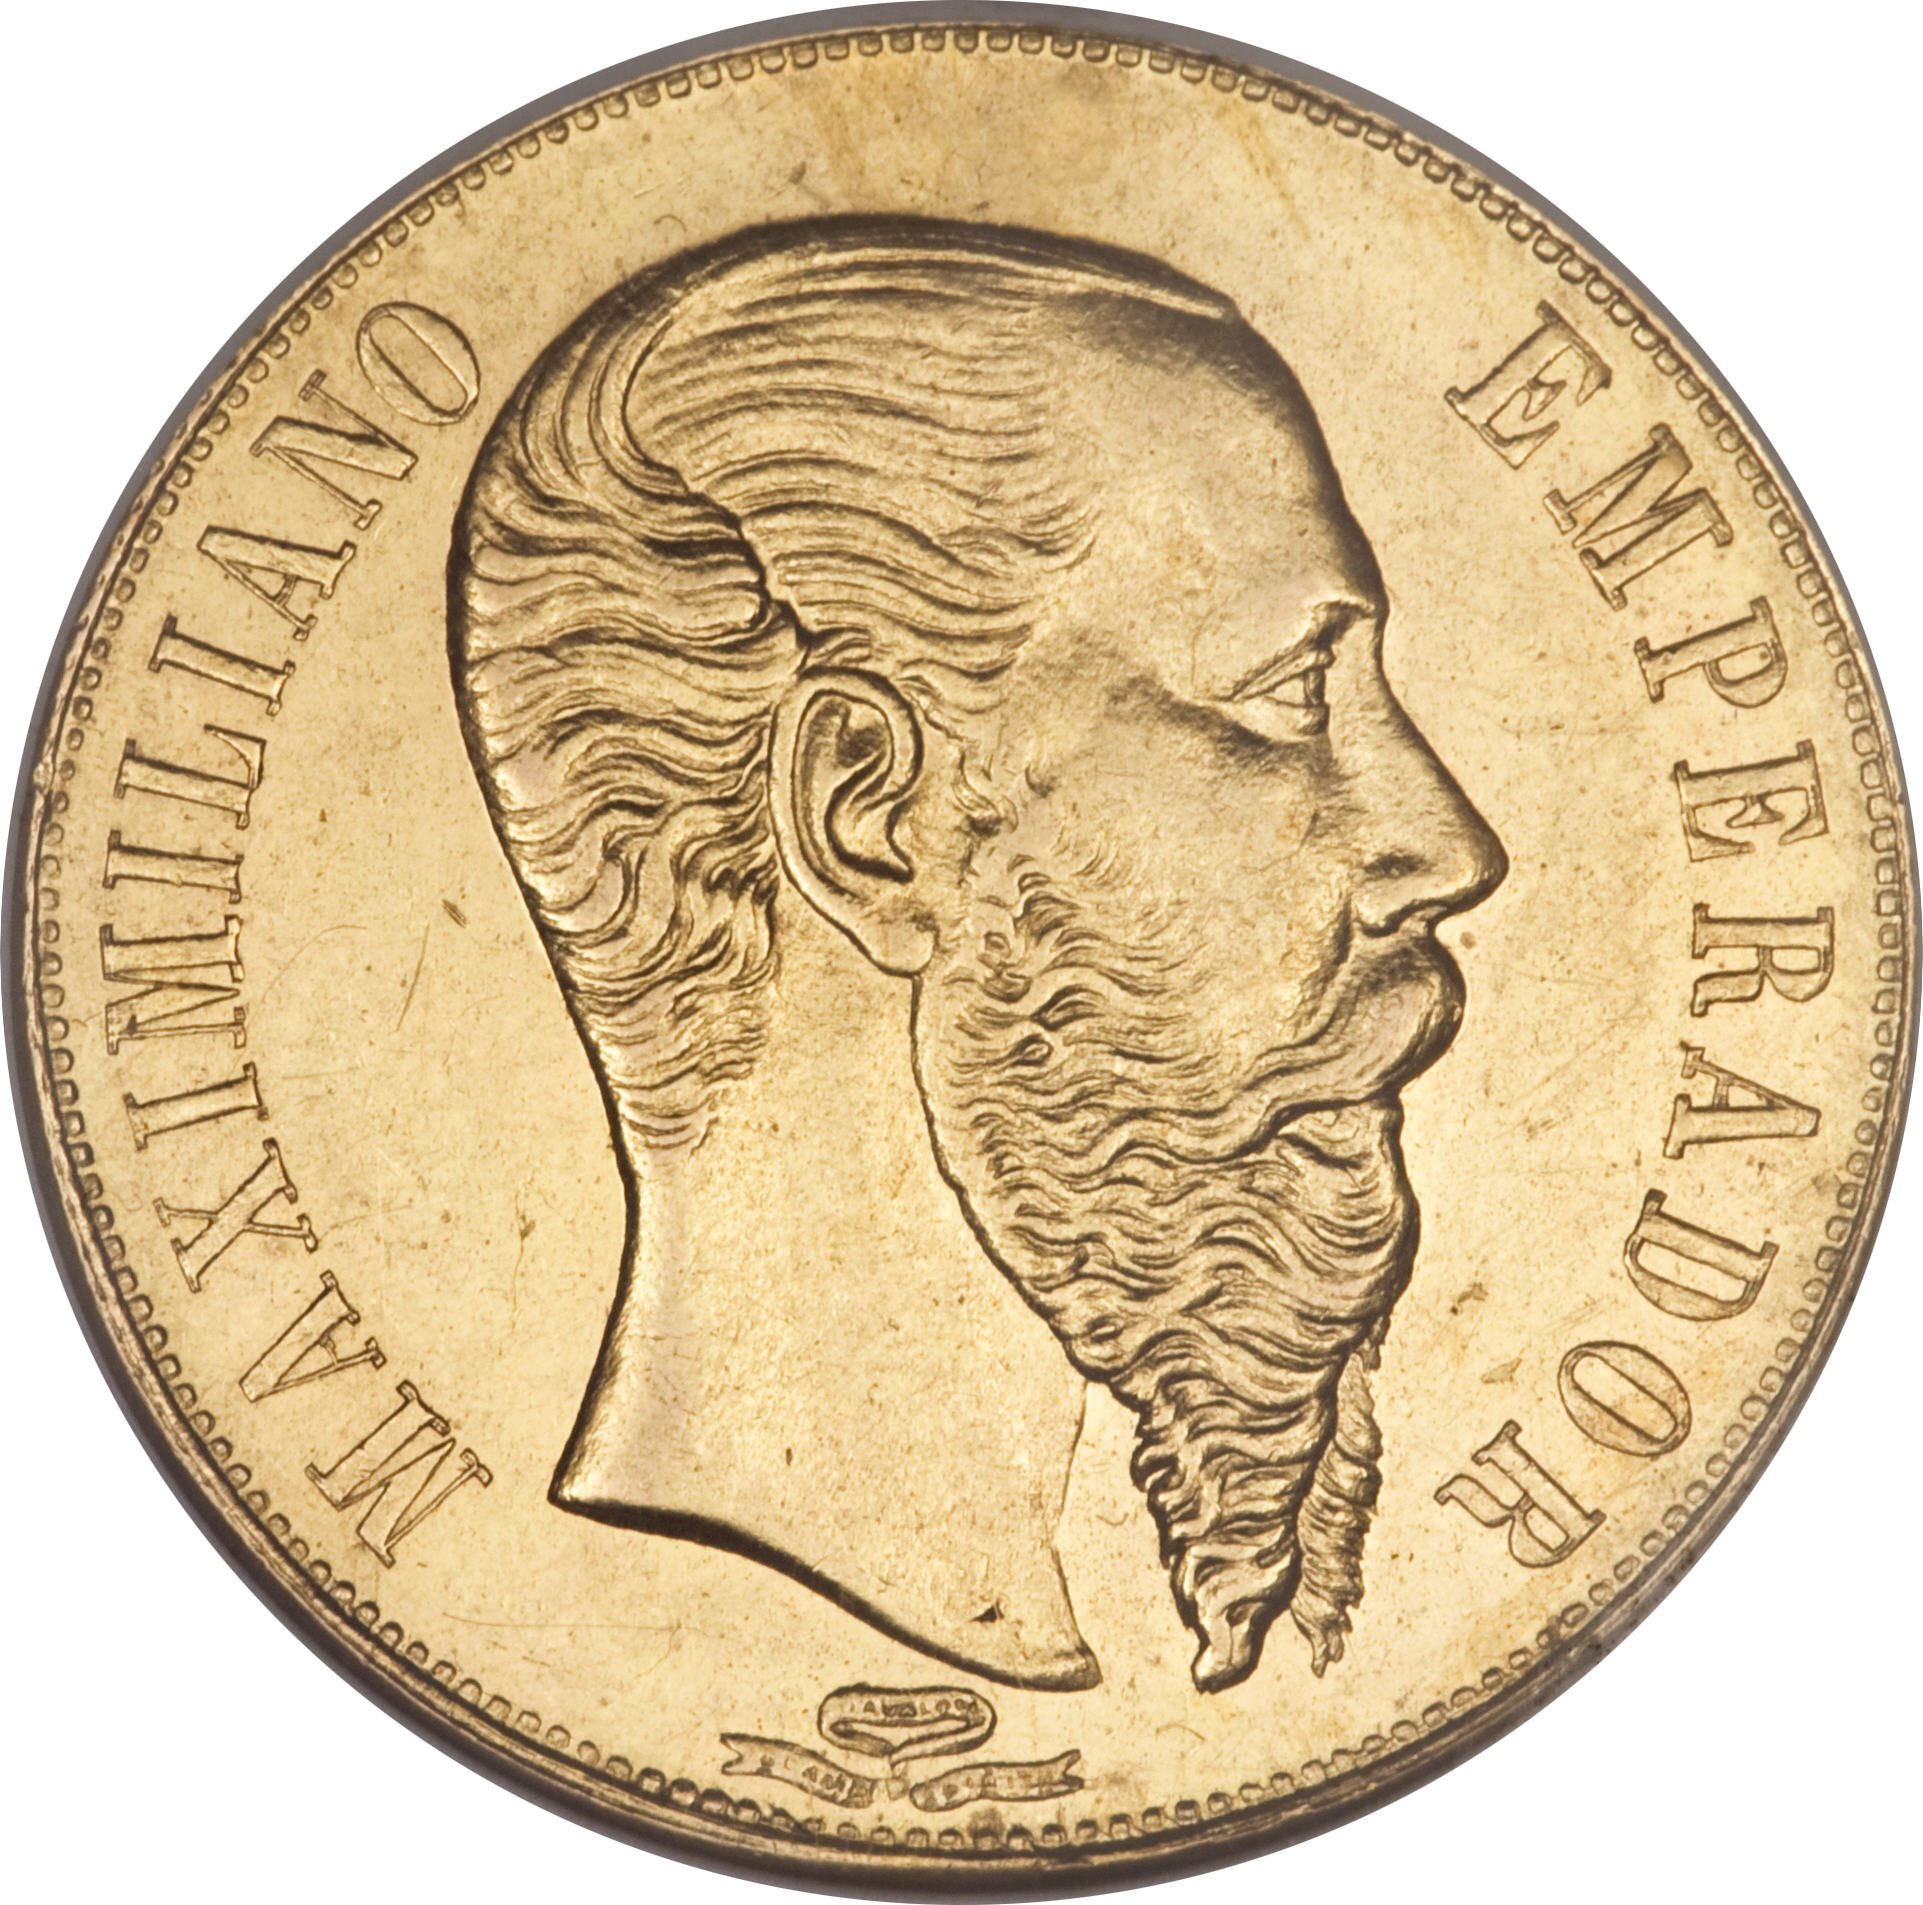 1865 Maximiliano Emperador Gold Coin http://en.numista.com/catalogue/pieces15009.html